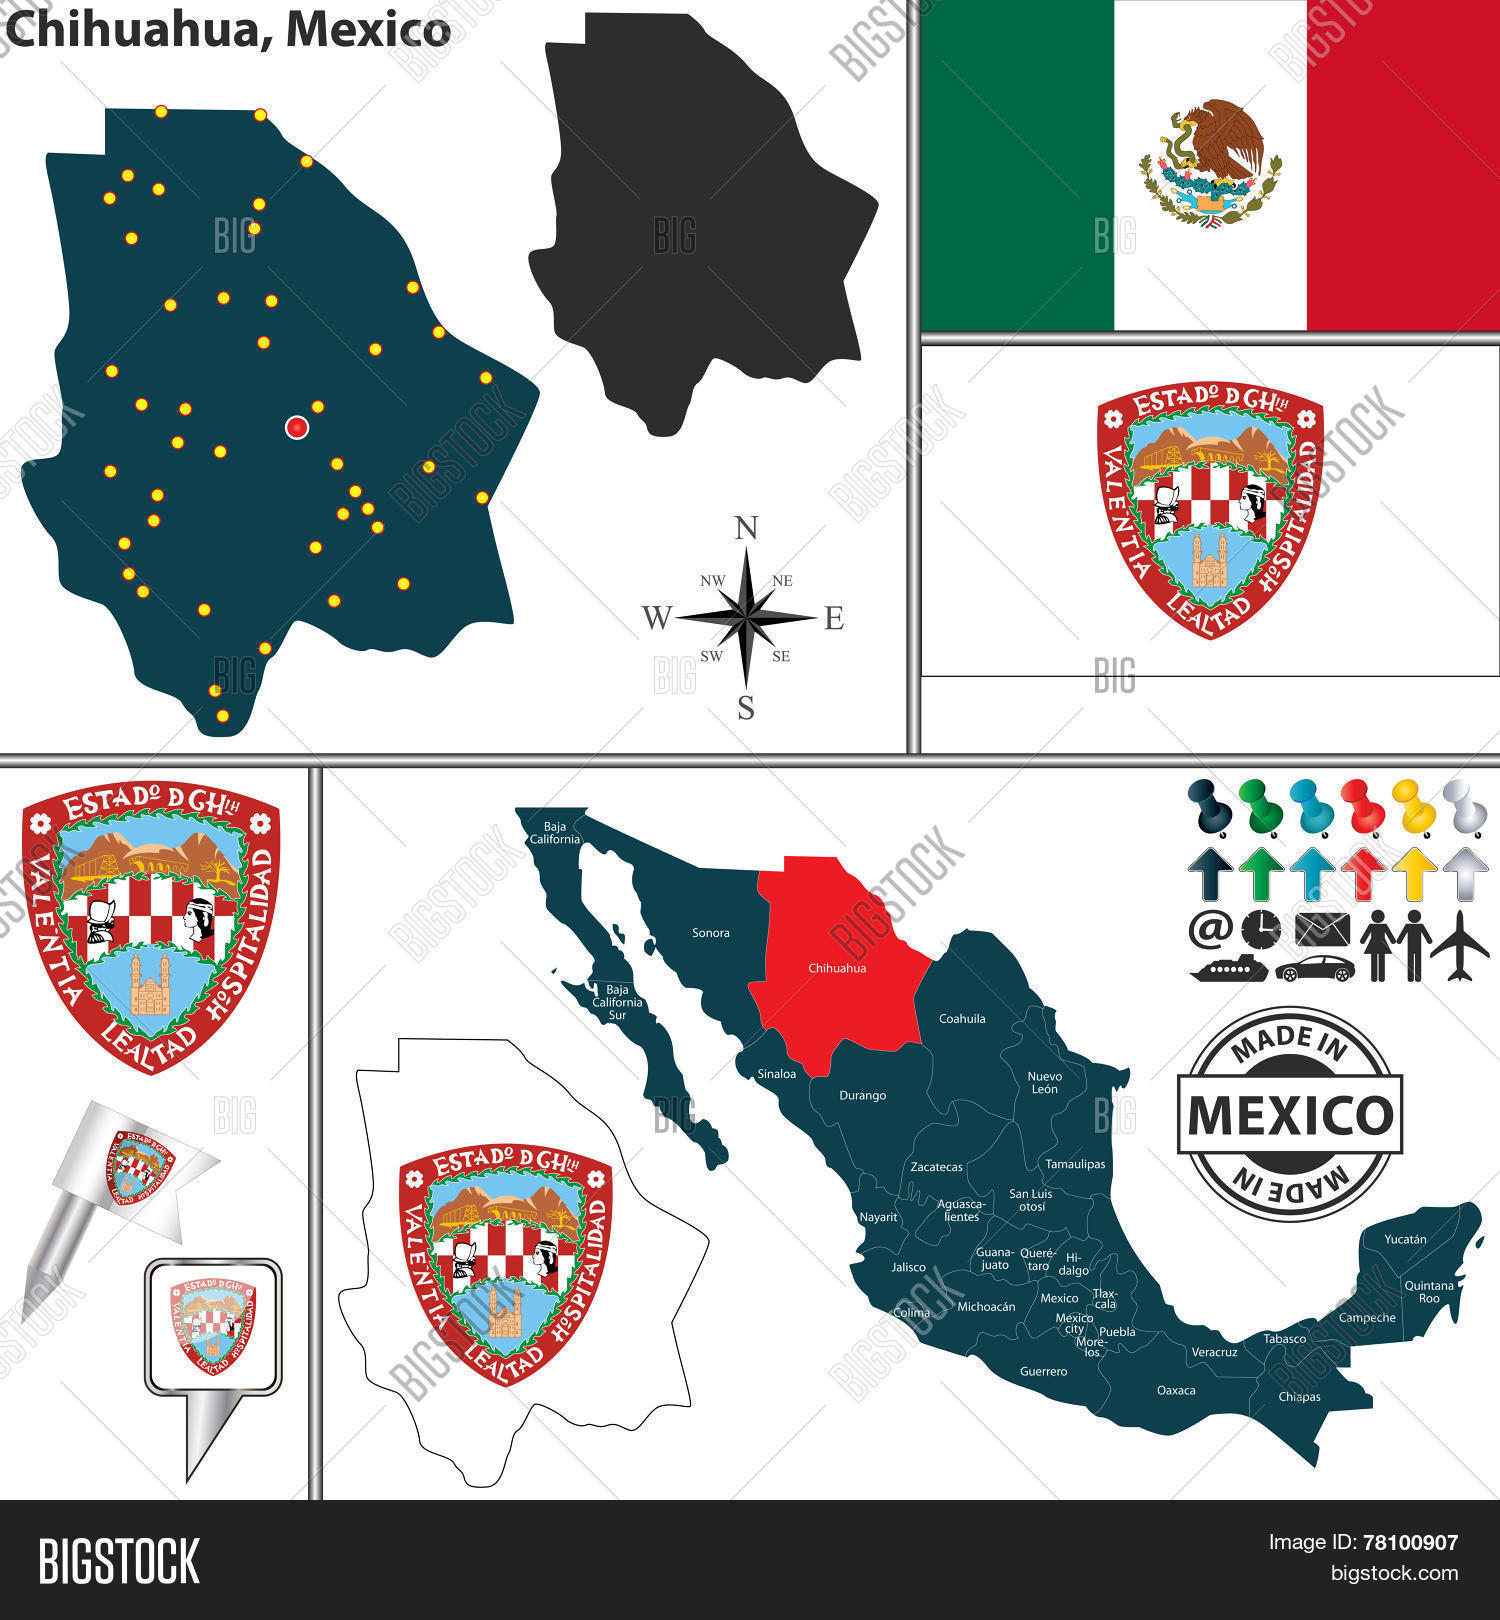 Map Chihuahua, Mexico Vector & Photo (Free Trial) | Bigstock on